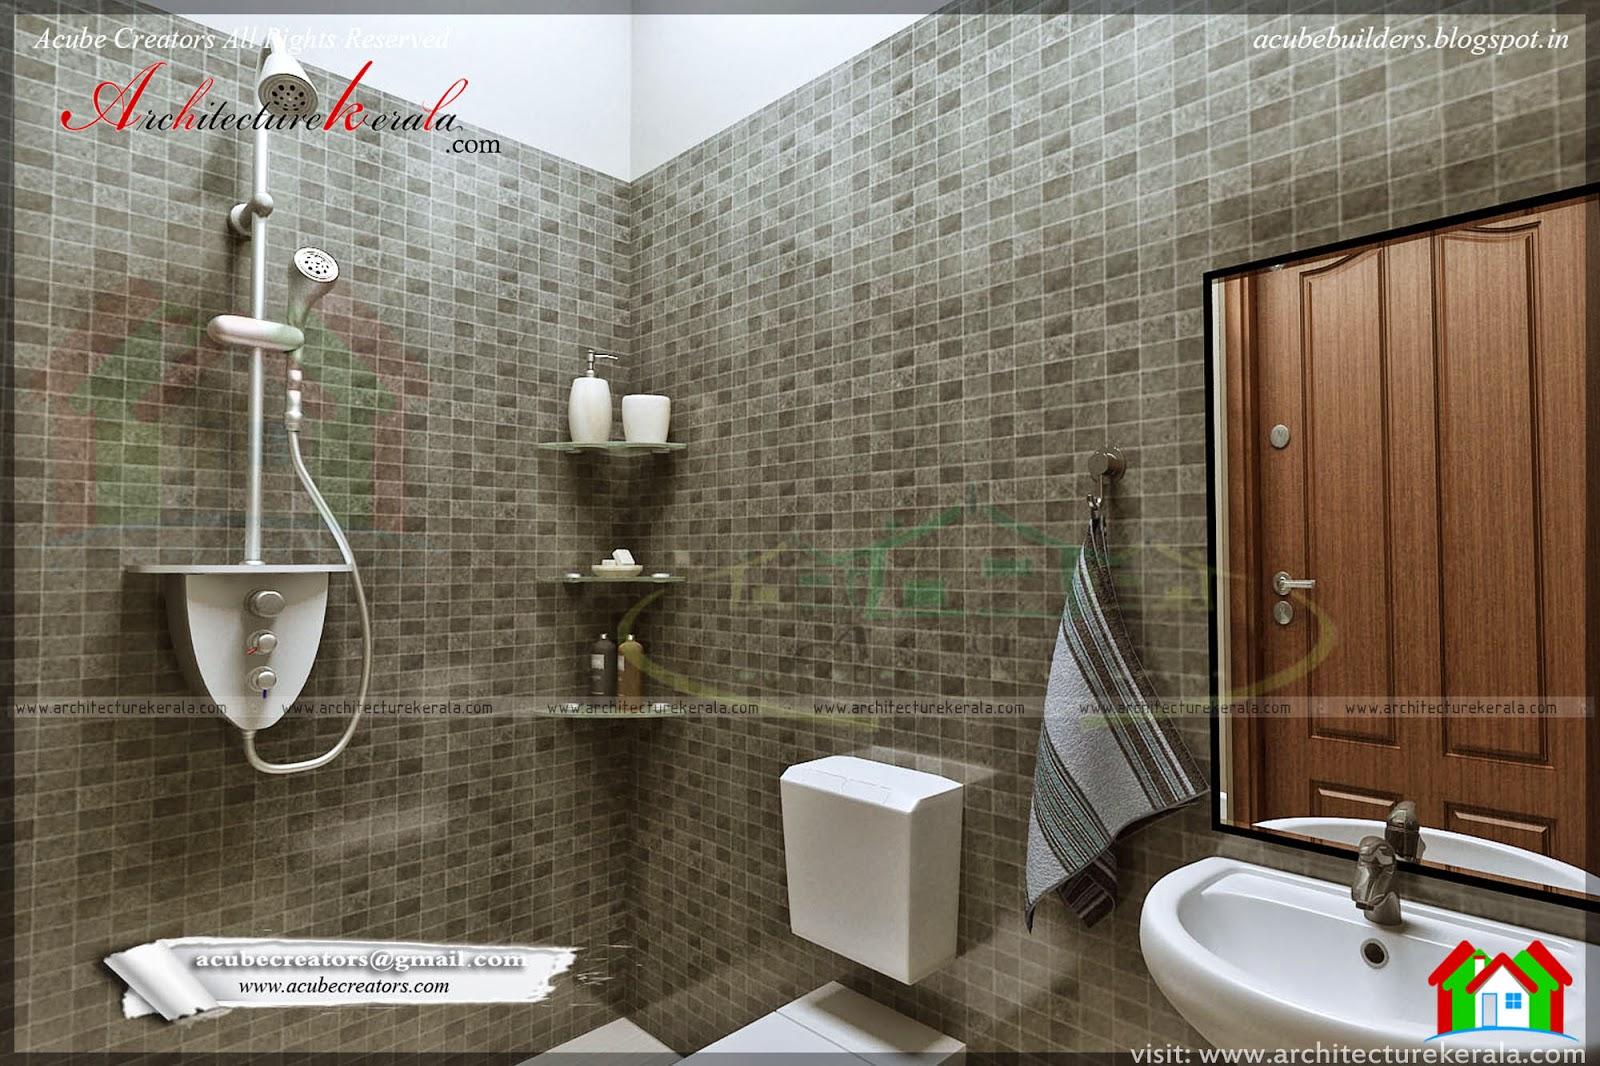 architecture kerala bathroom - Bathroom Design Ideas In Kerala